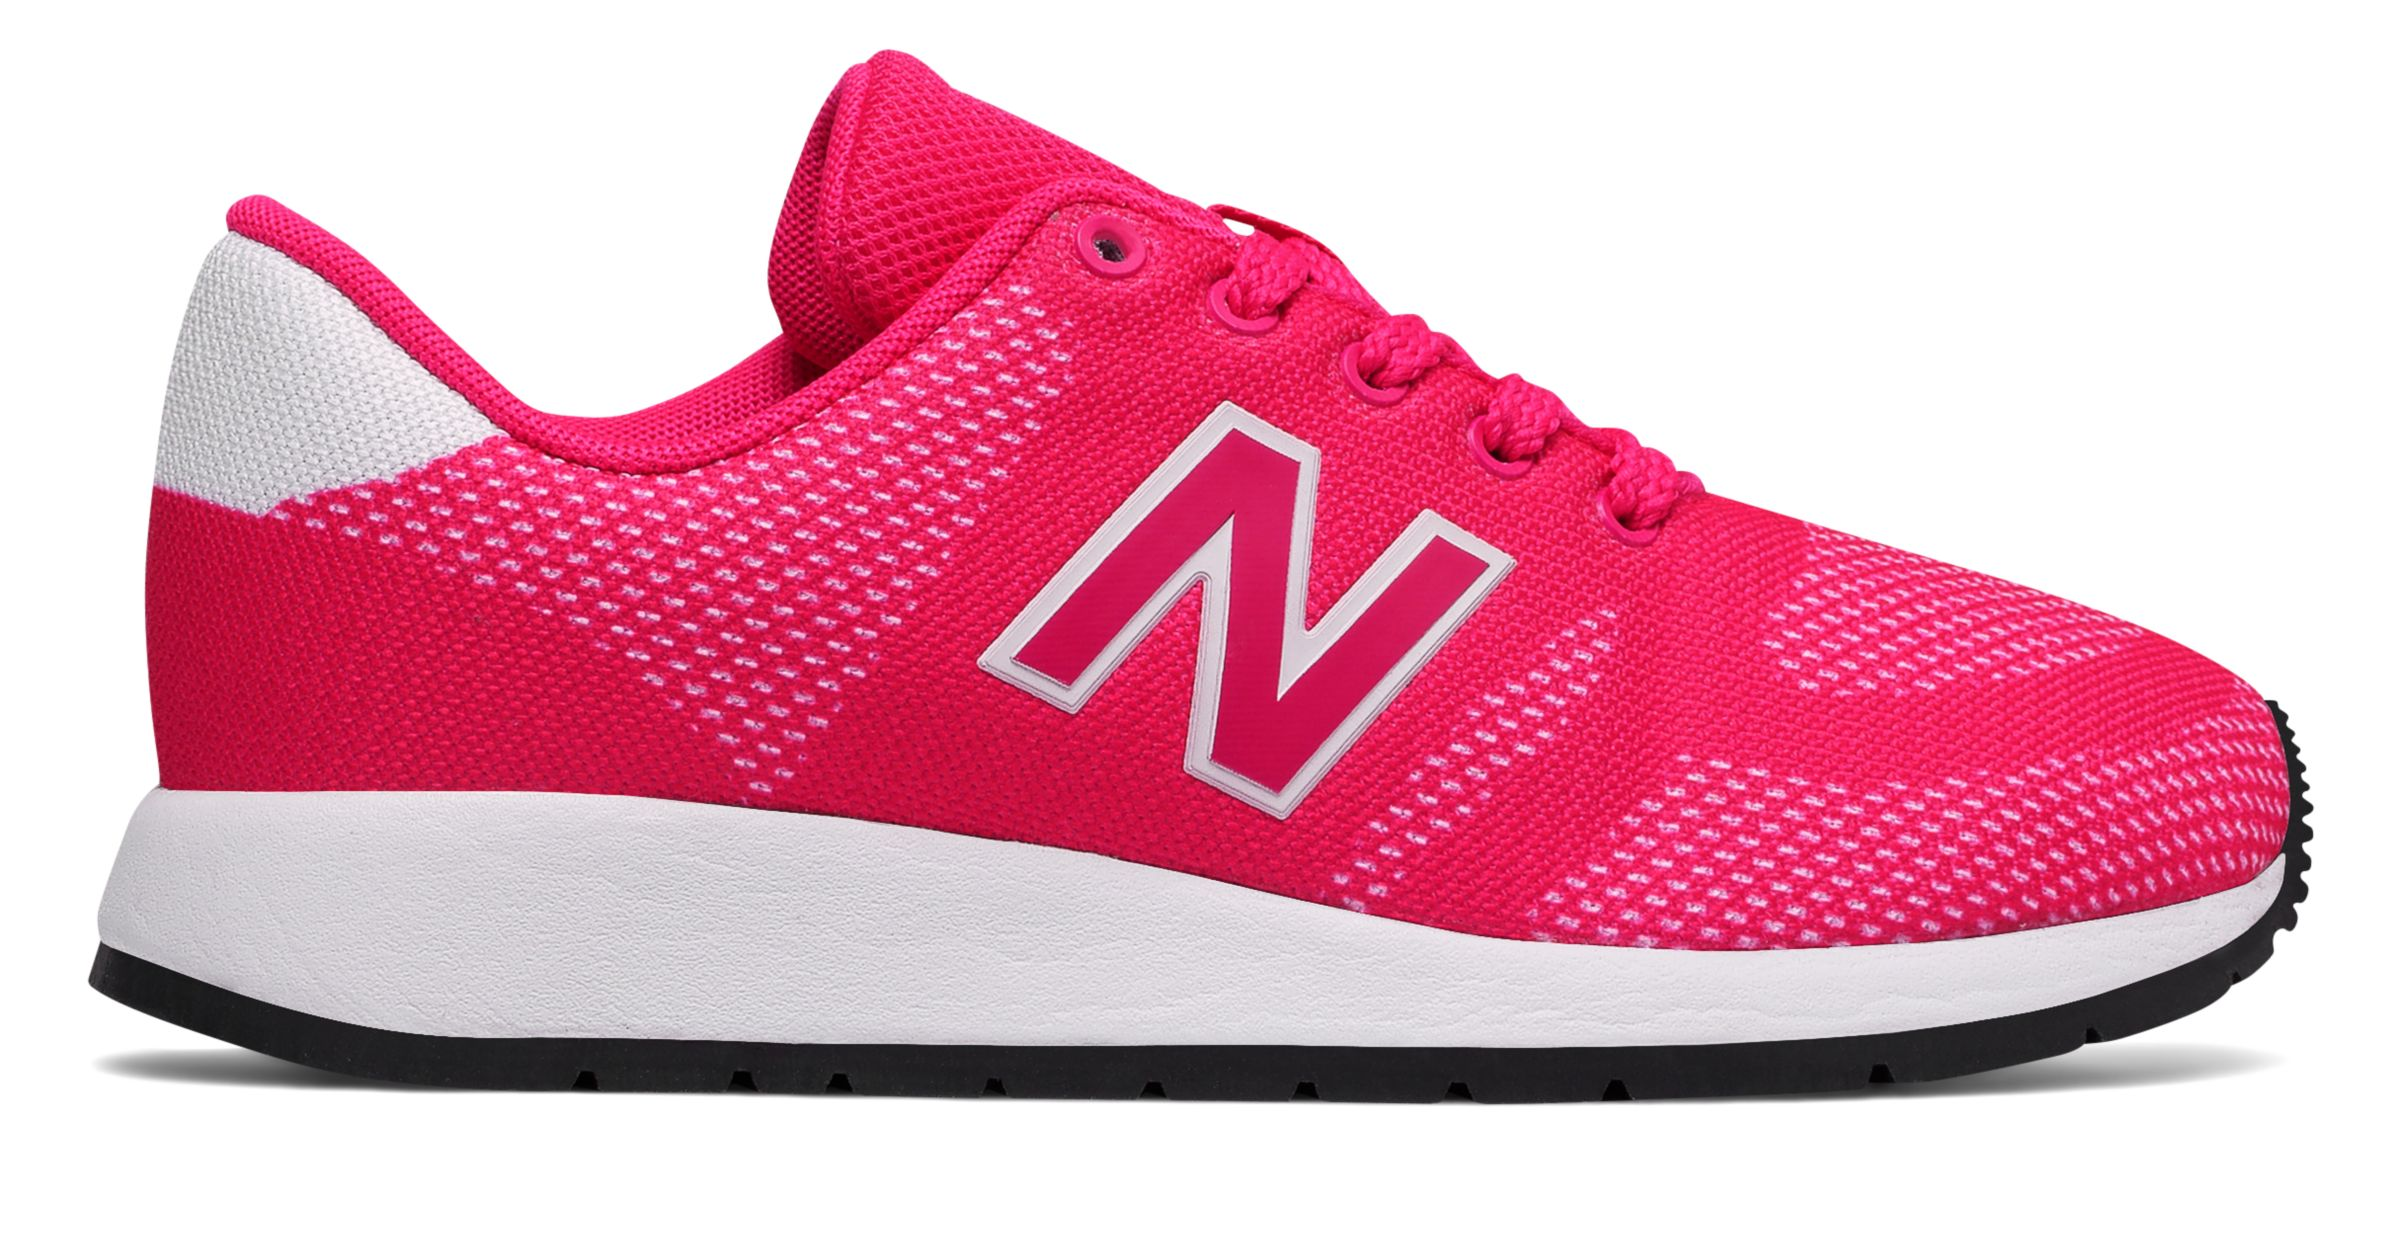 NB 420 New Balance, Pink with White